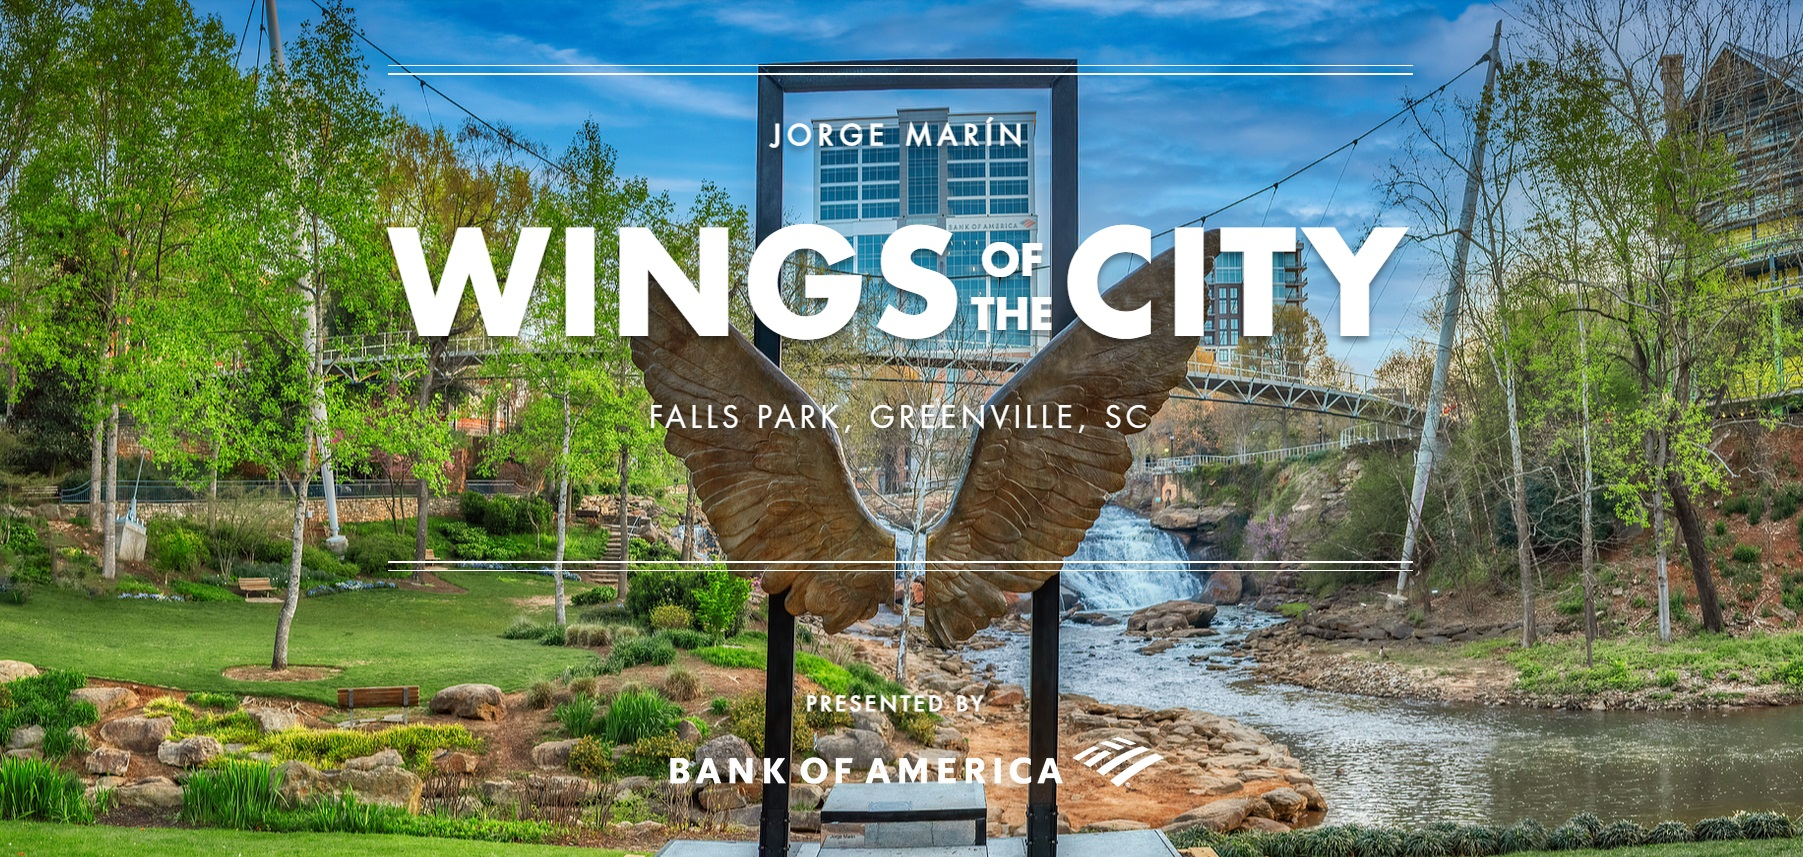 sculpture of wings in foreground of Falls Park, Greenville, South Carolina